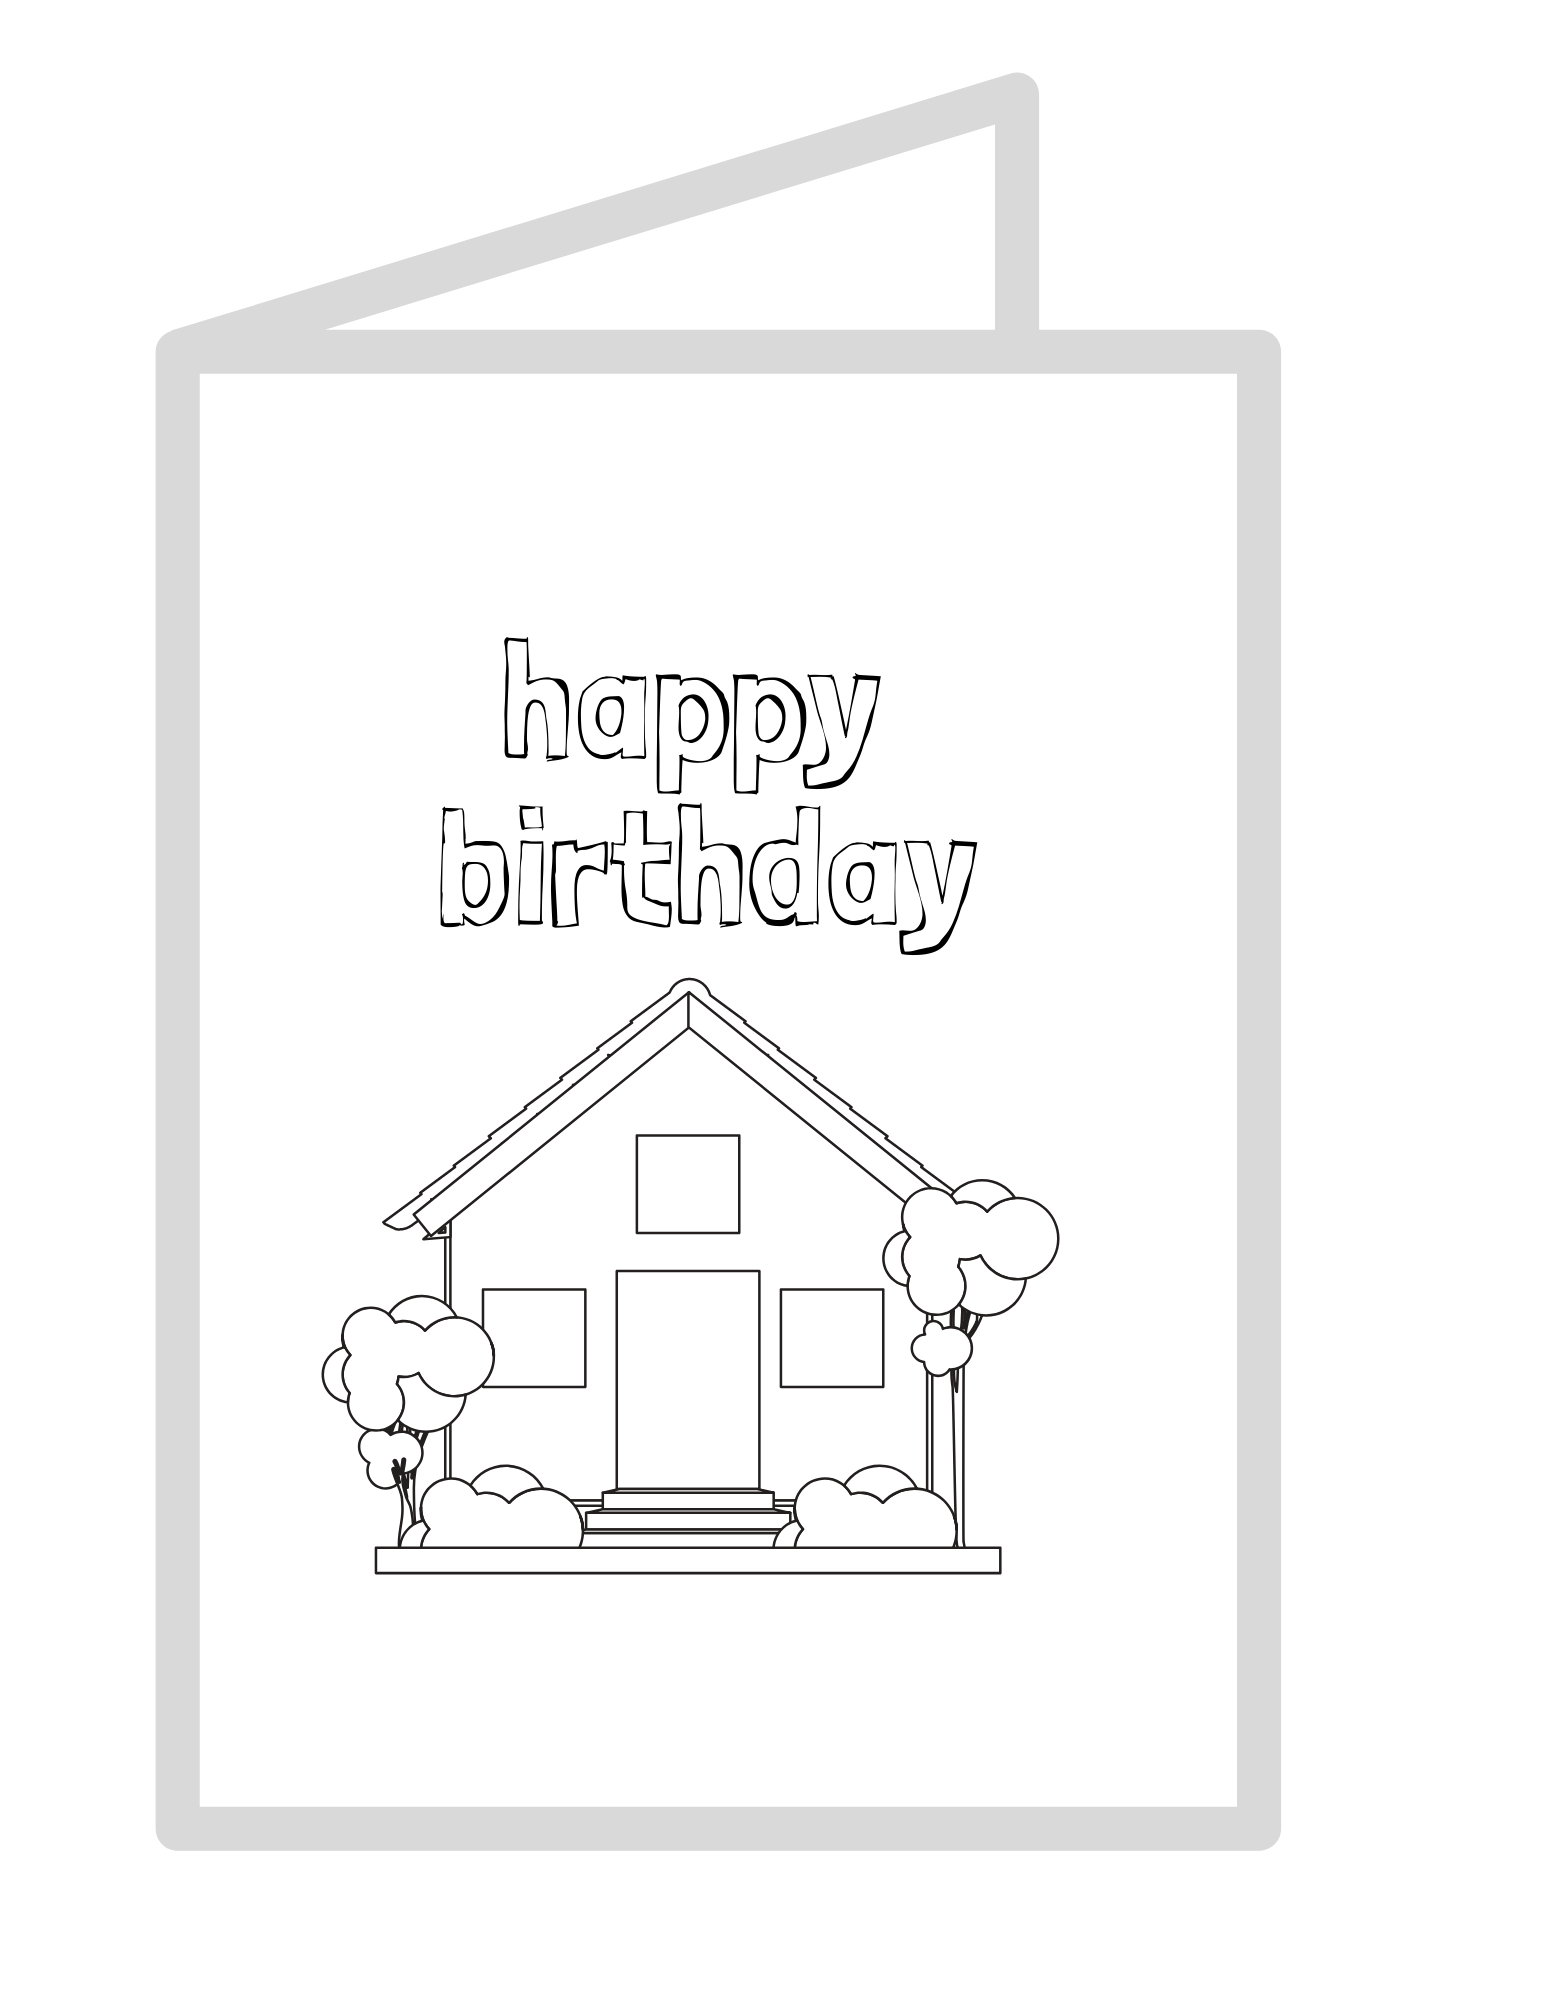 Thank You For Donation Template from images.squarespace-cdn.com